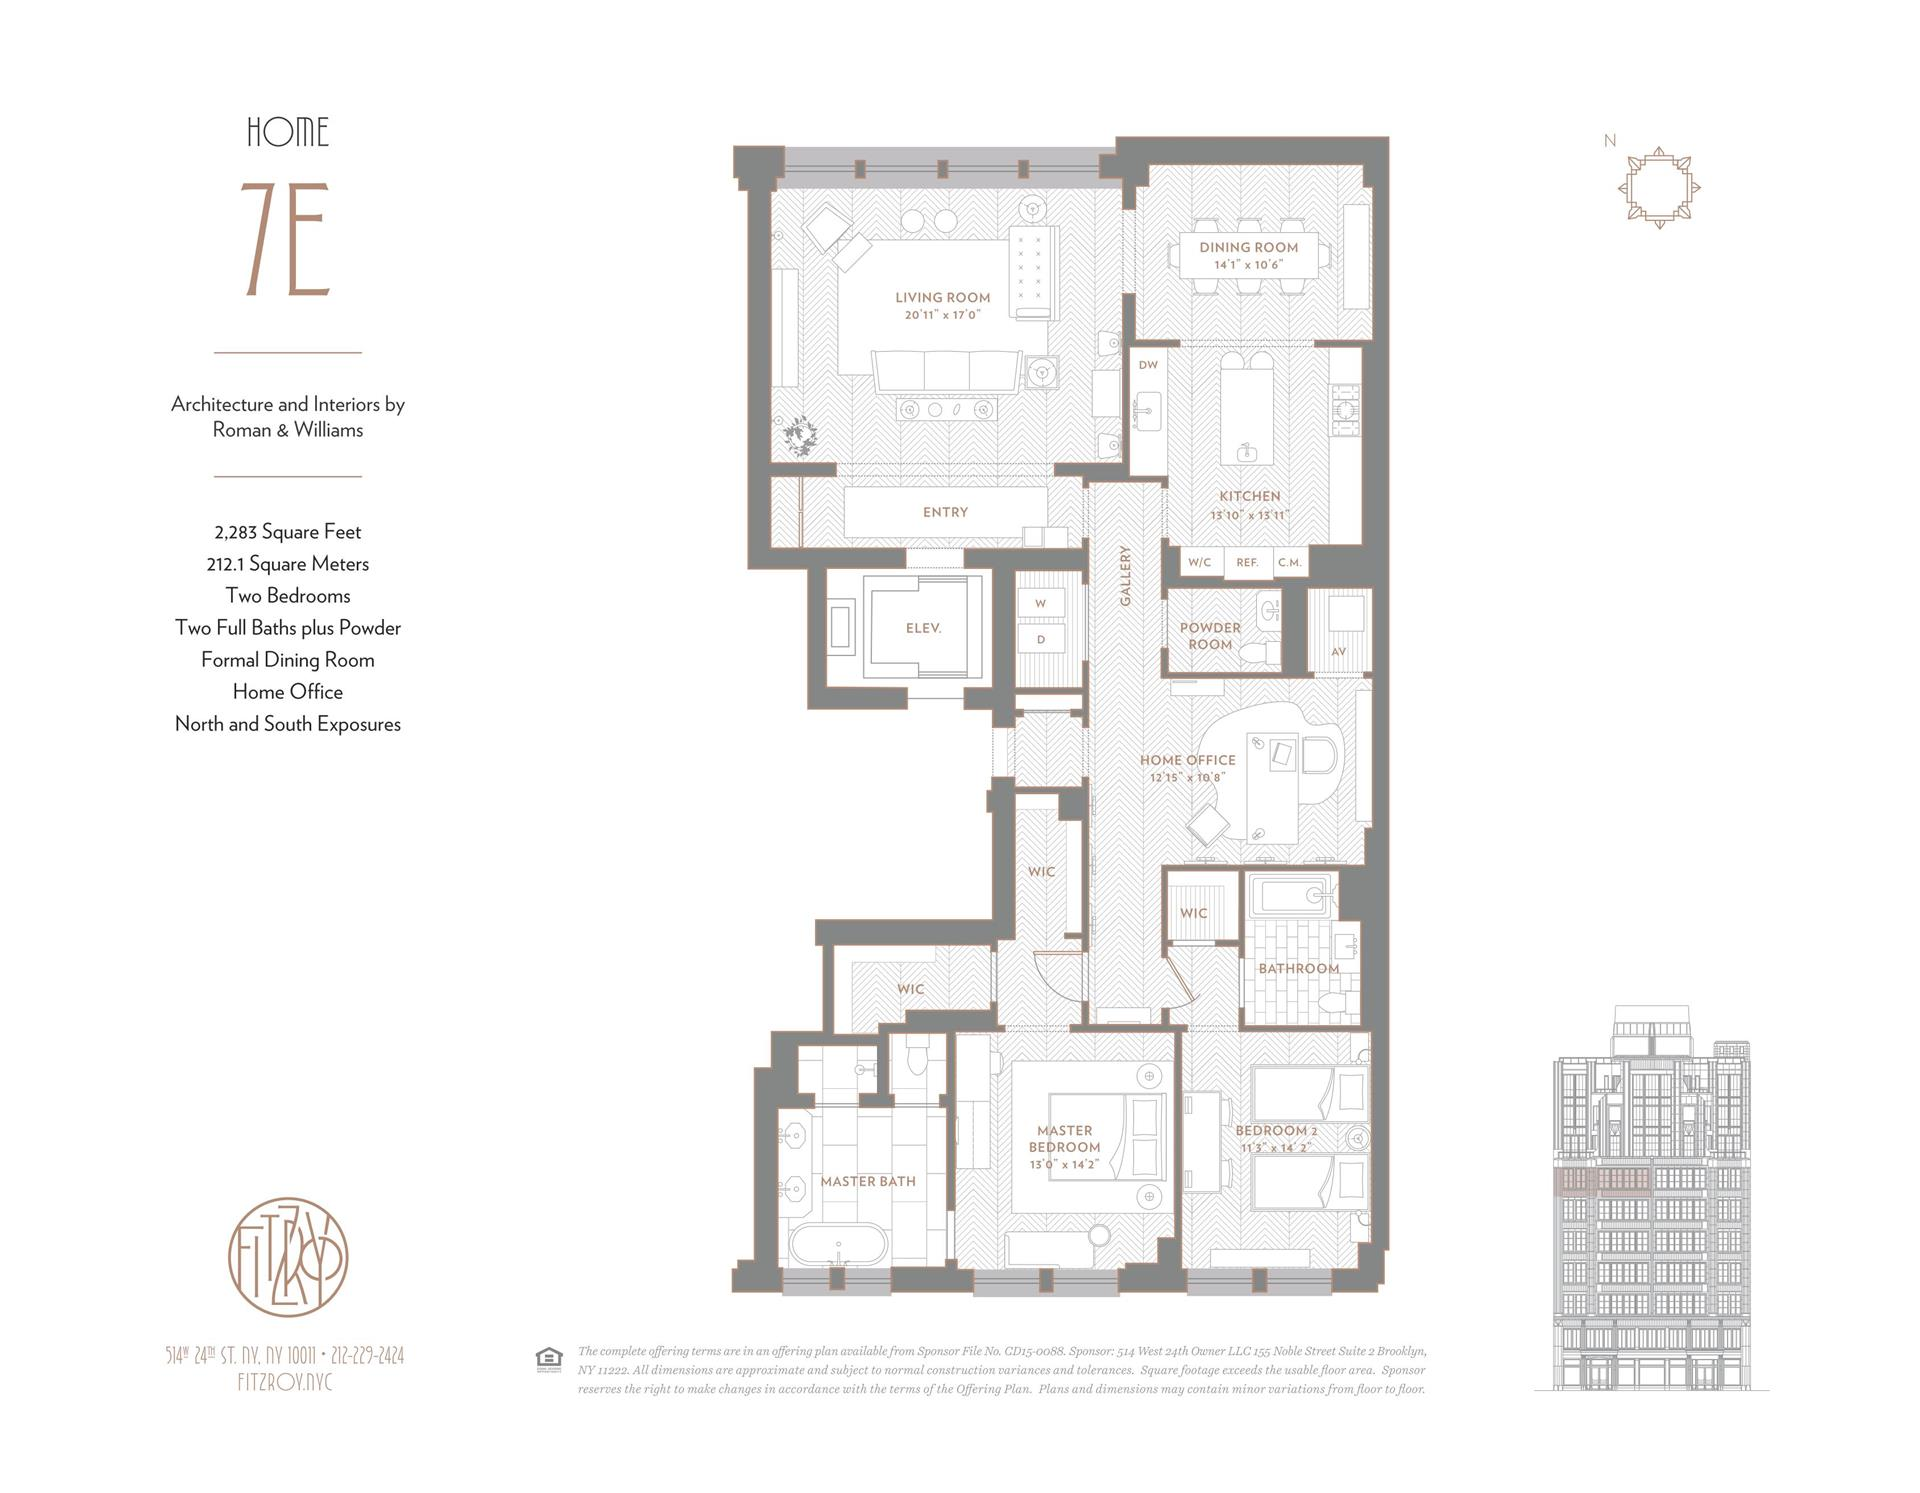 Floor plan of The Fitzroy, 514 West 24th St, 7E - Chelsea, New York